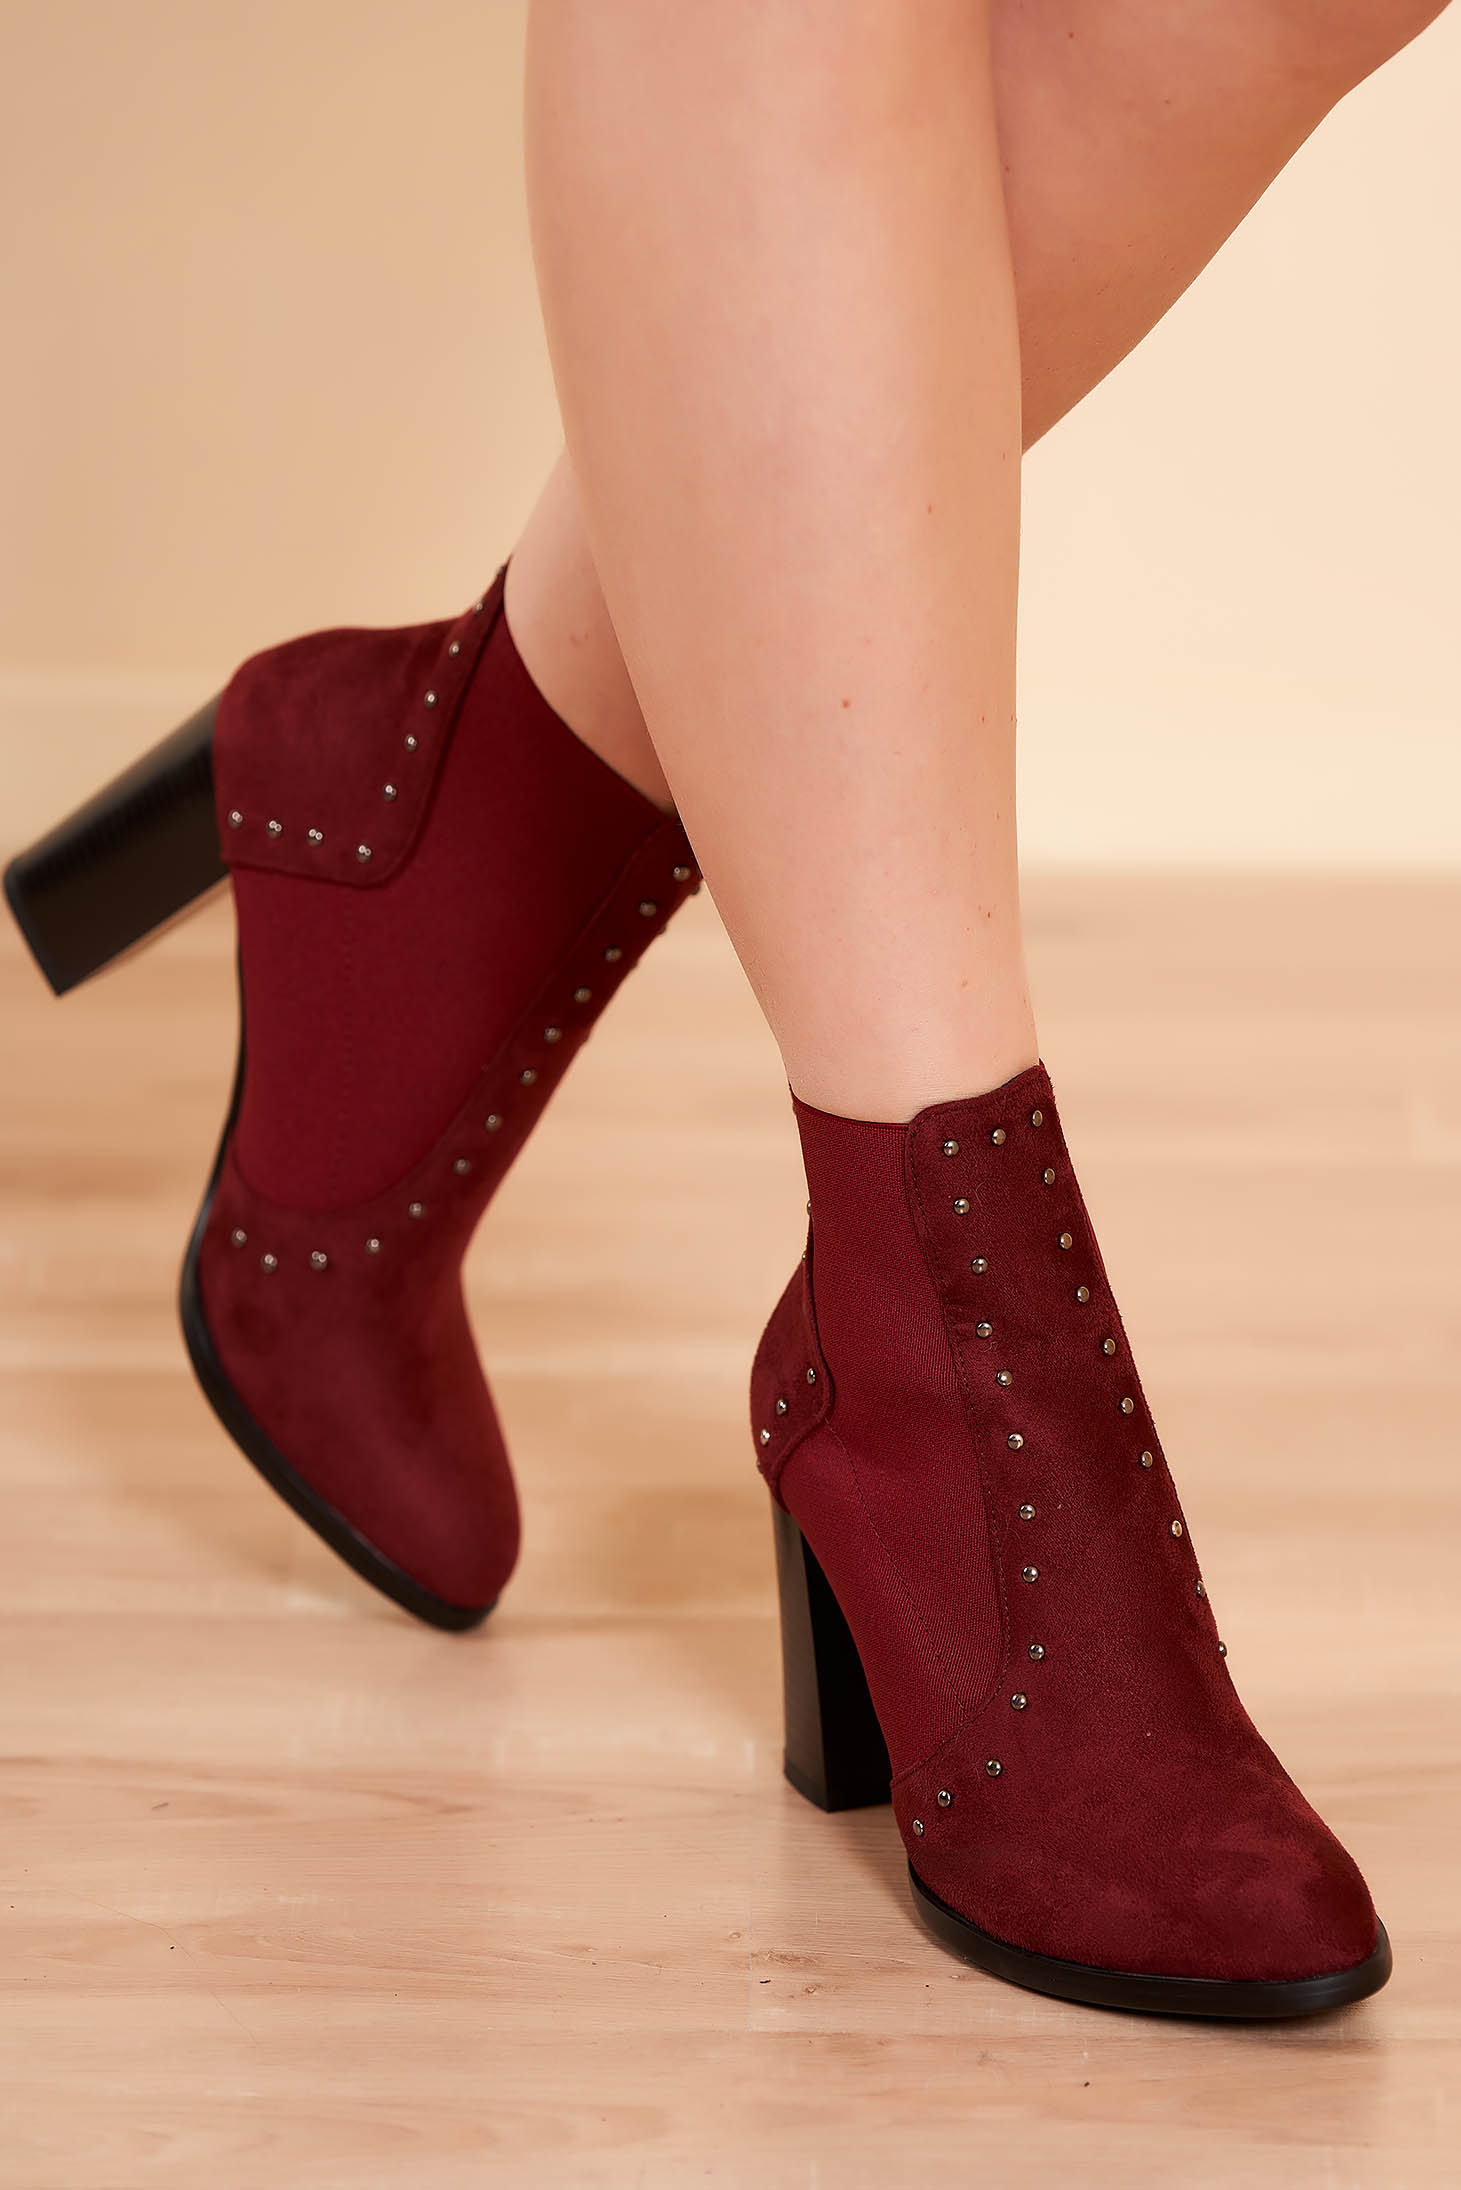 Ankle boots burgundy elegant from ecological leather chunky heel slightly round toe tip with metallic spikes